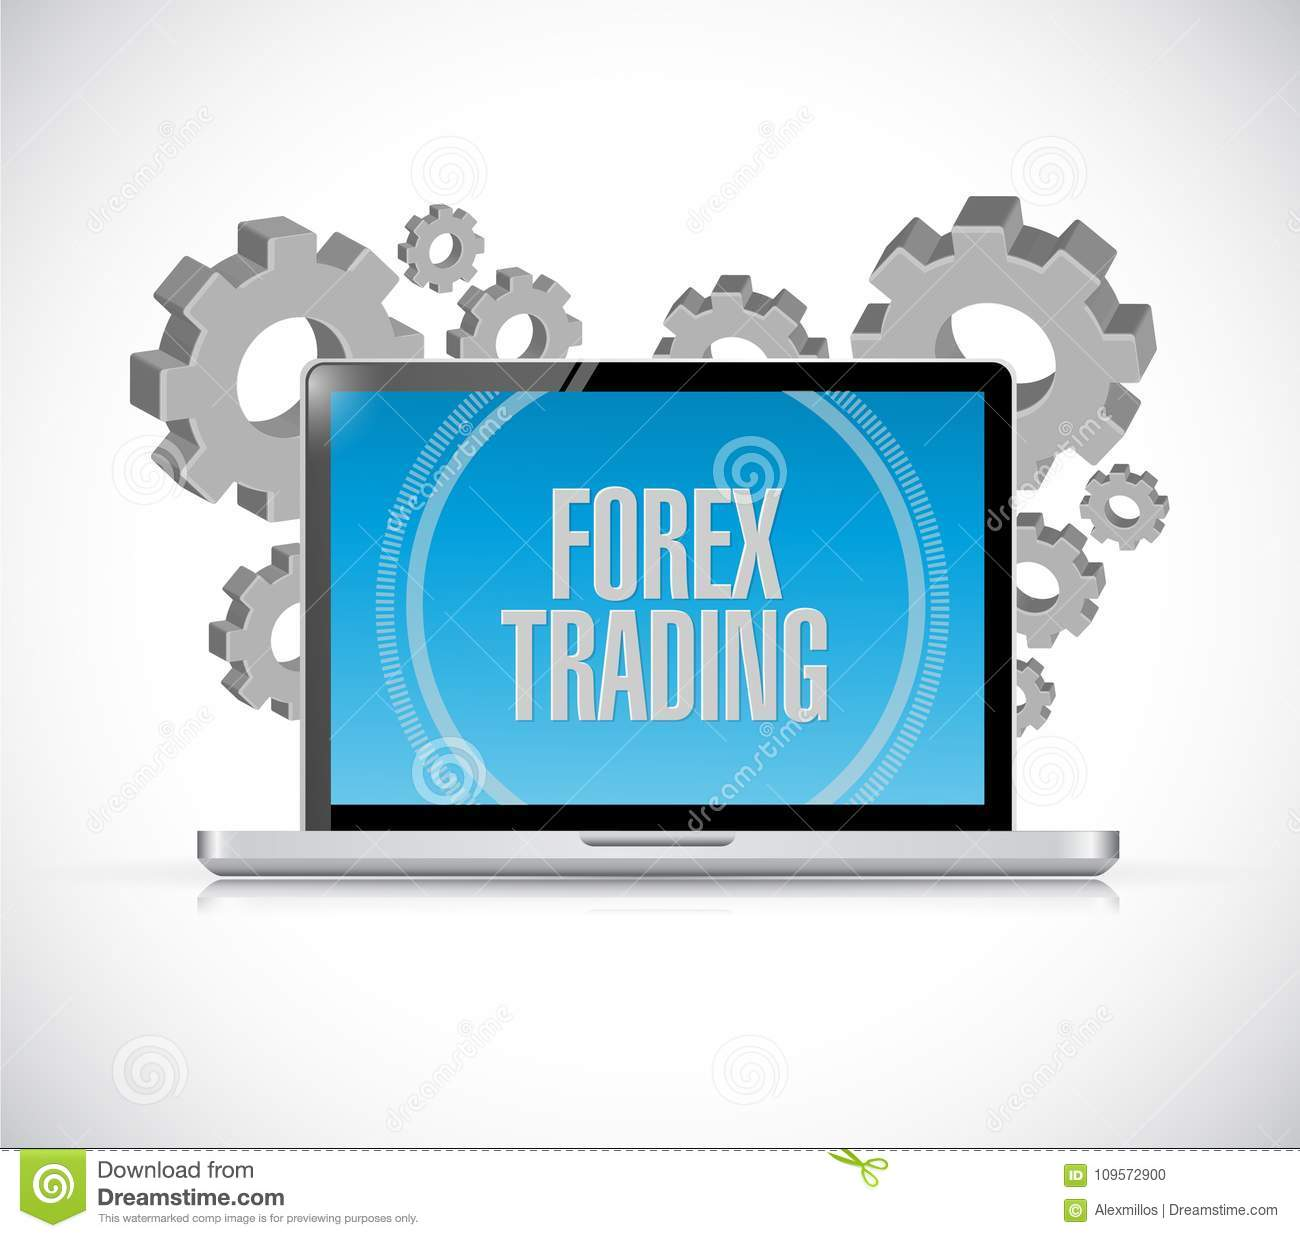 Who controls the forex market